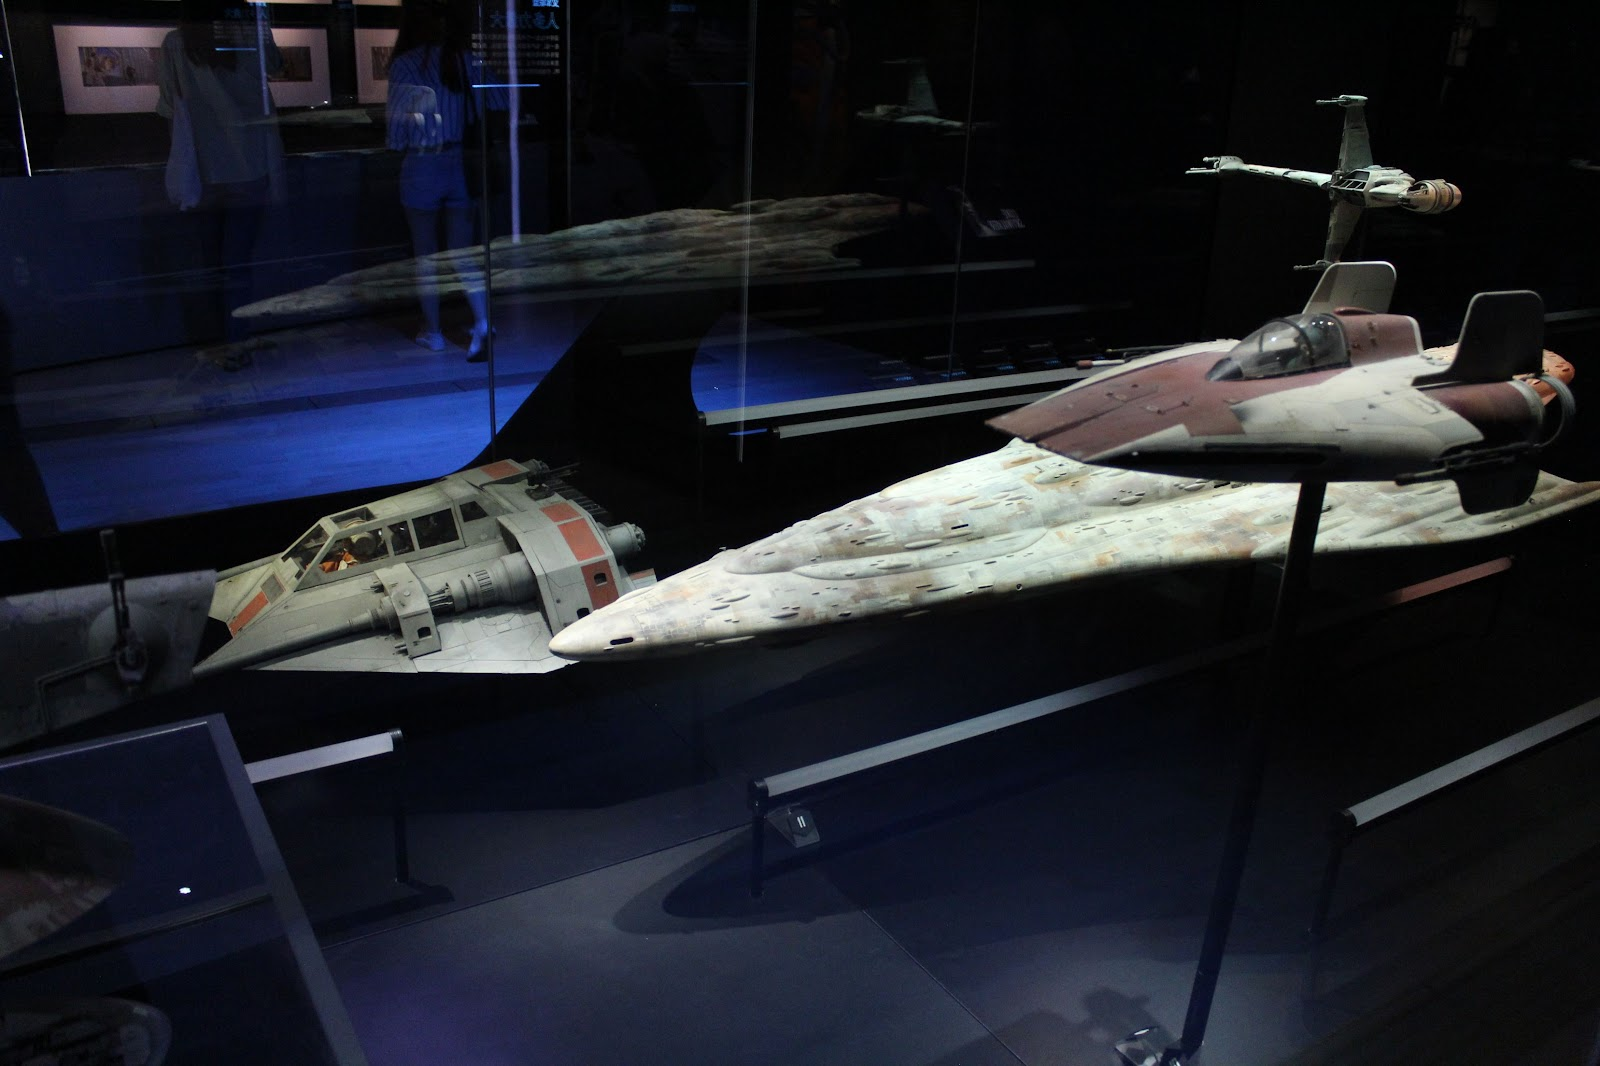 Models of Starfighters used in the films